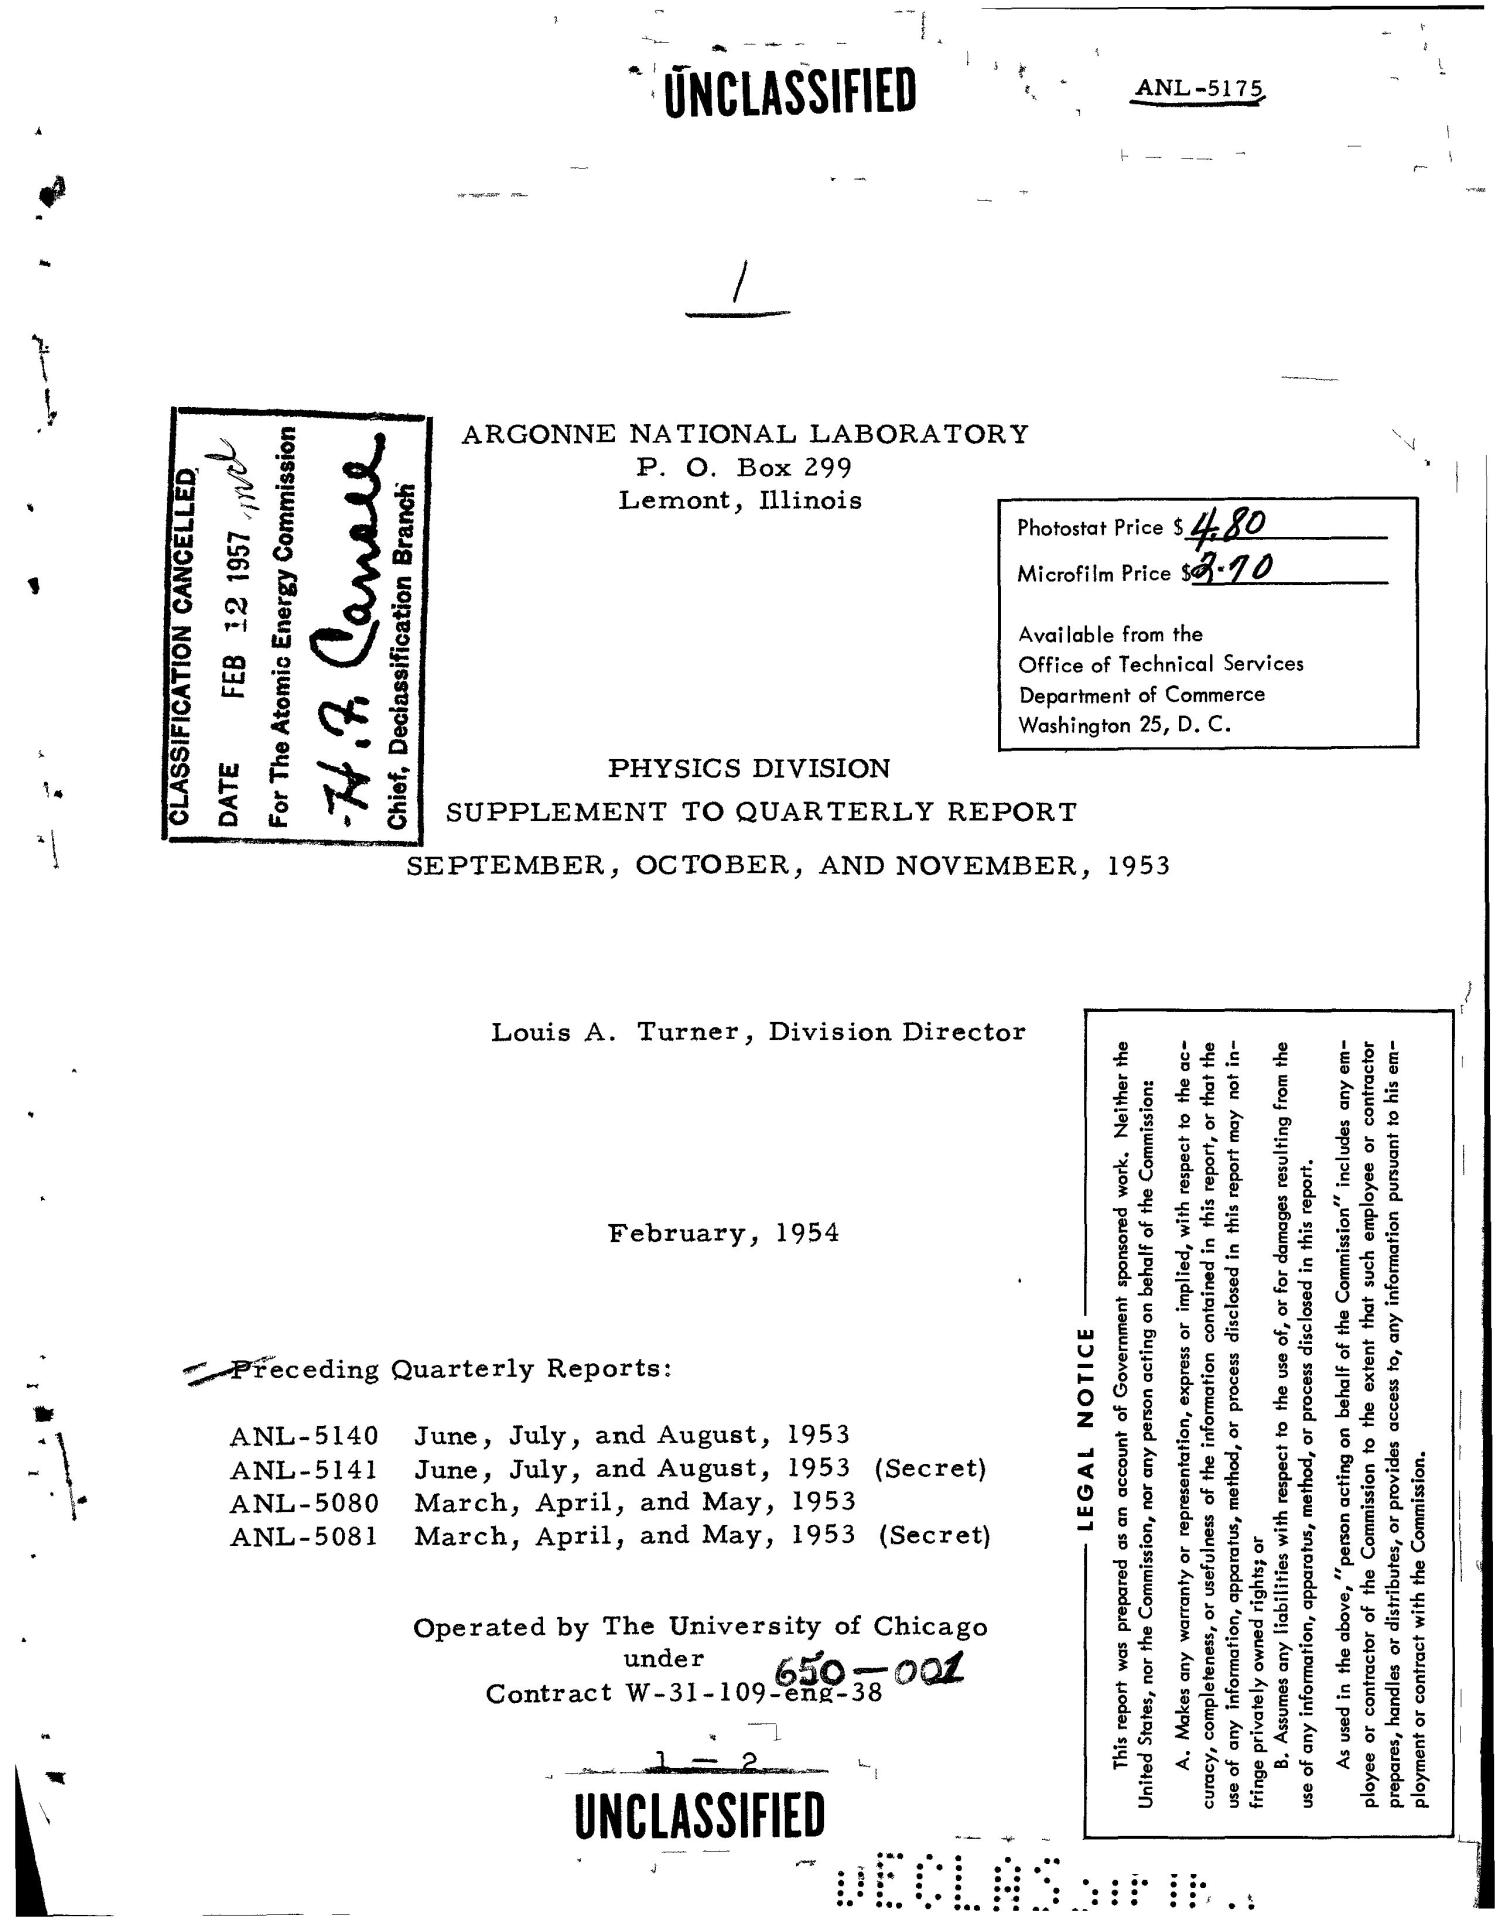 PHYSICS DIVISION SUPPLEMENT TO QUARTERLY REPORT FOR SEPTEMBER, OCTOBER, AND NOVEMBER 1953                                                                                                      [Sequence #]: 1 of 28